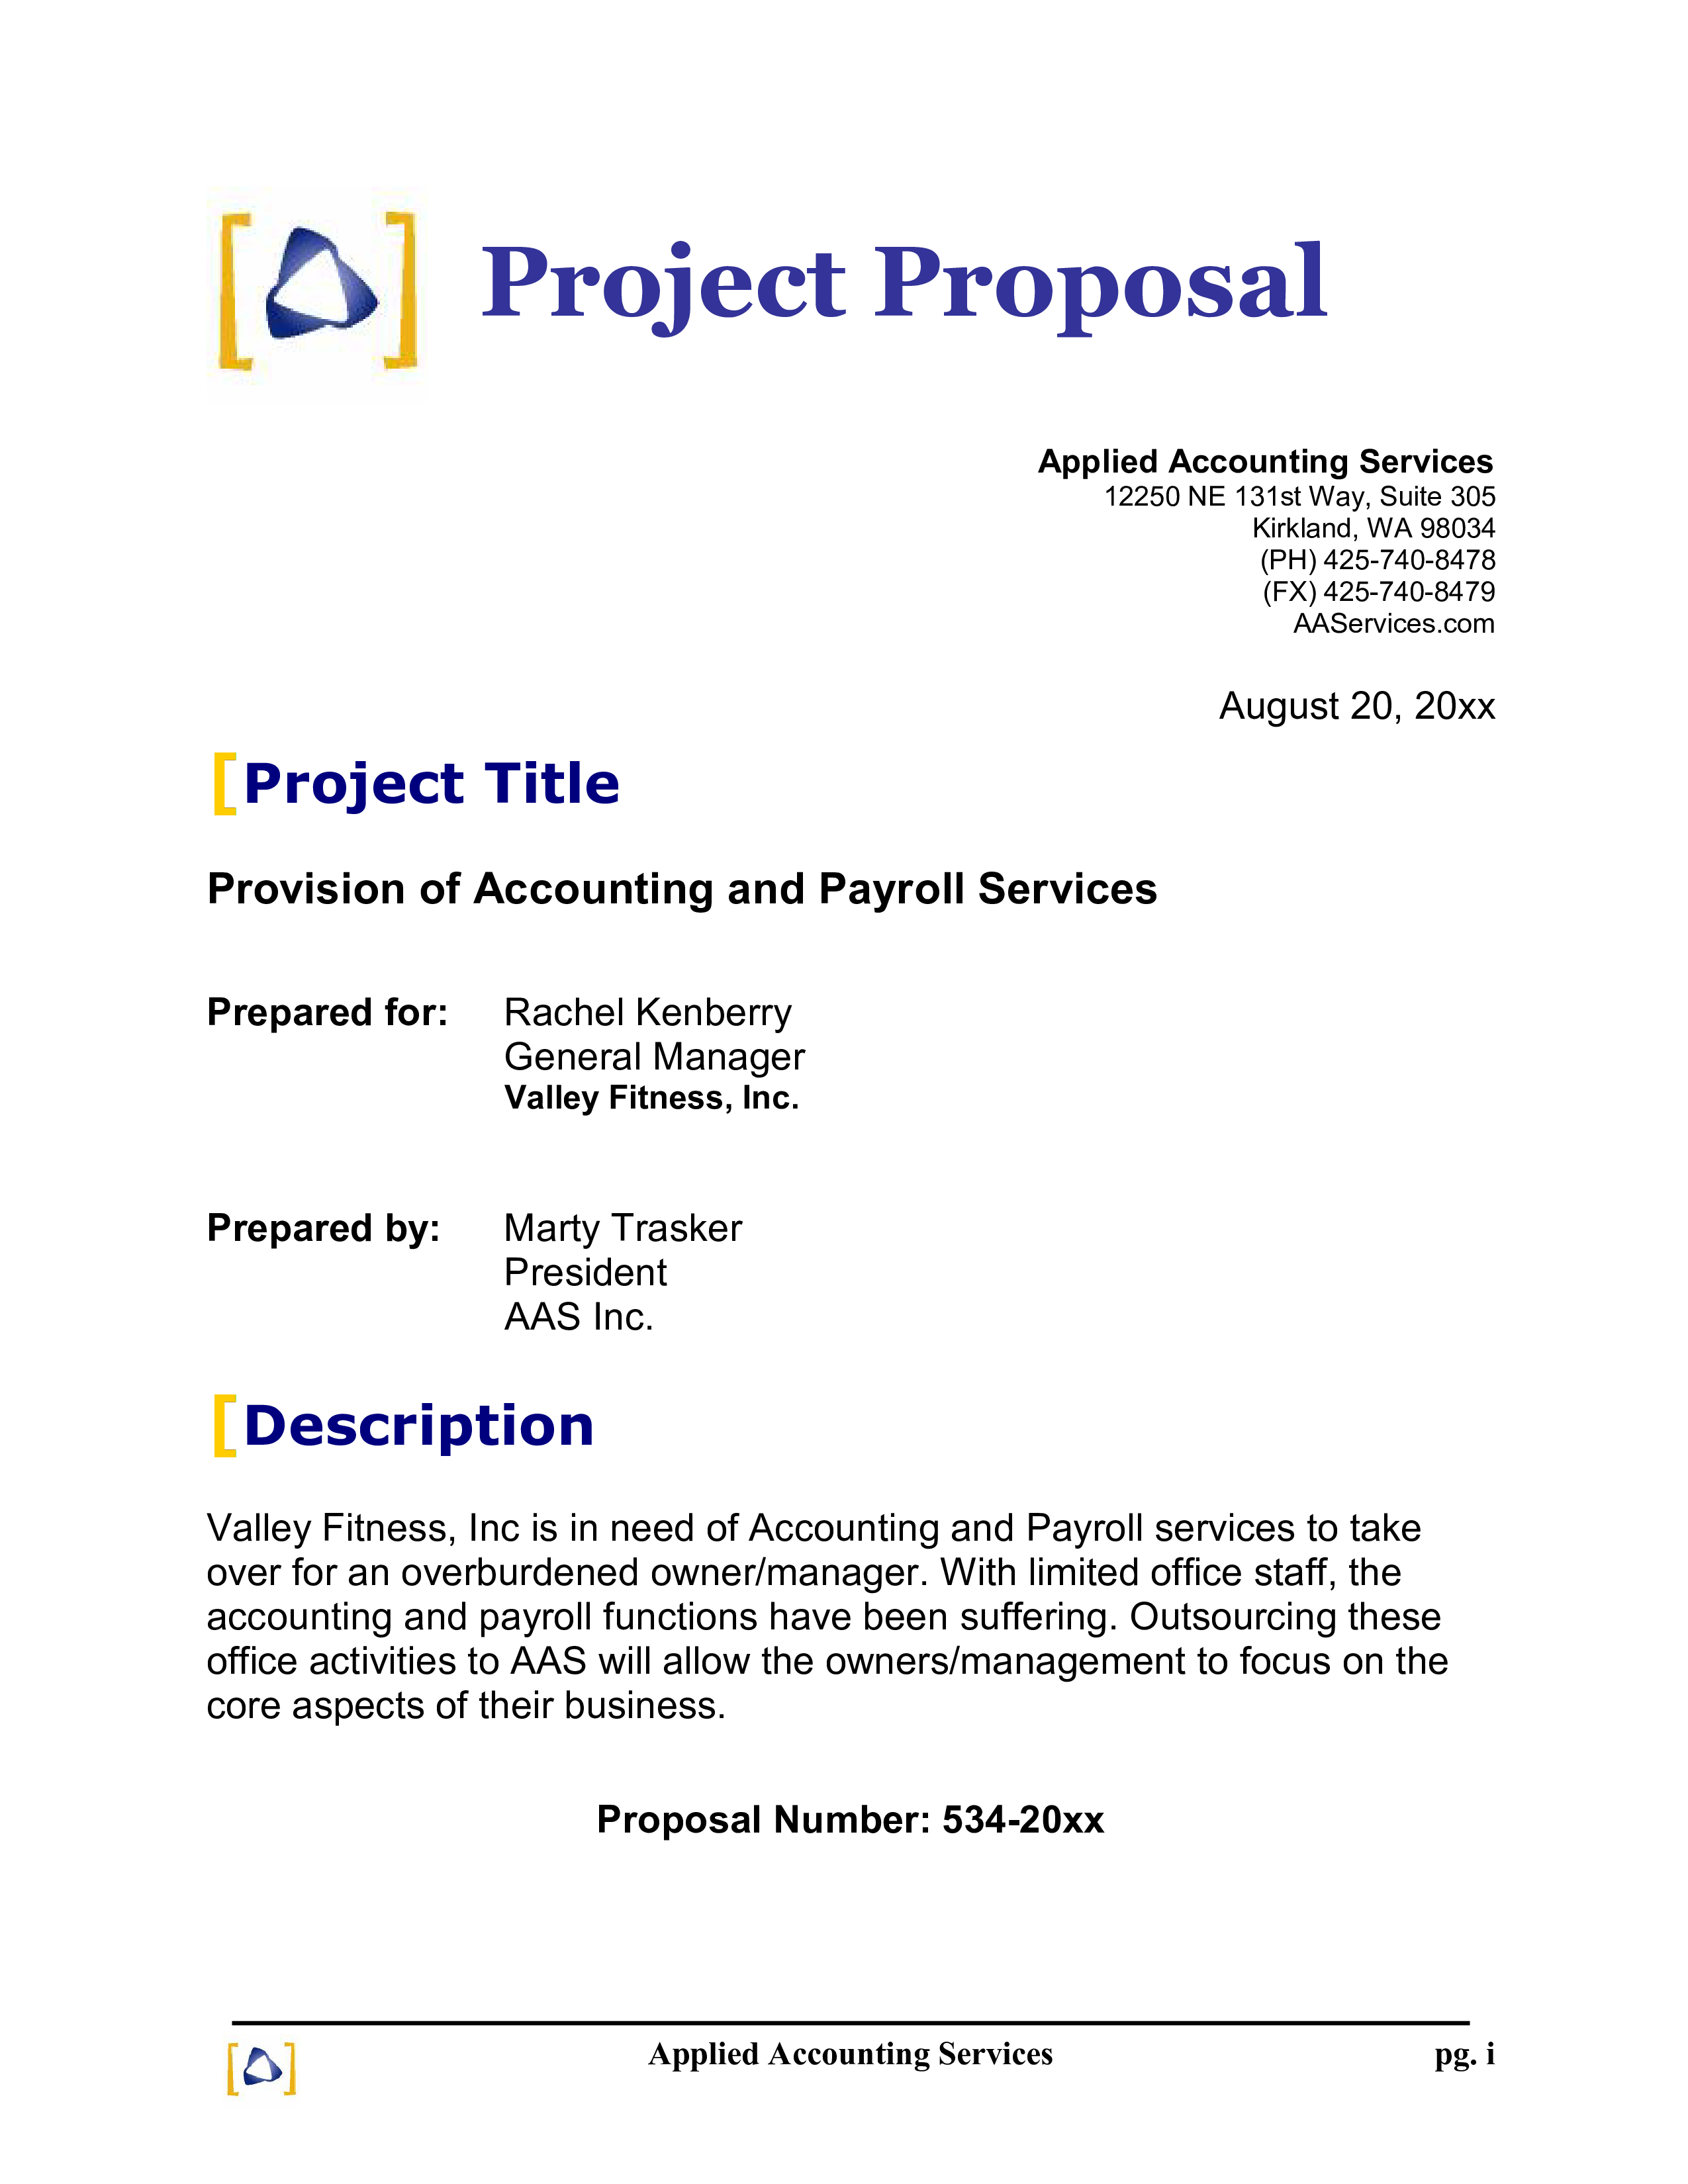 How to draft a strong Business Project Proposal? An easy